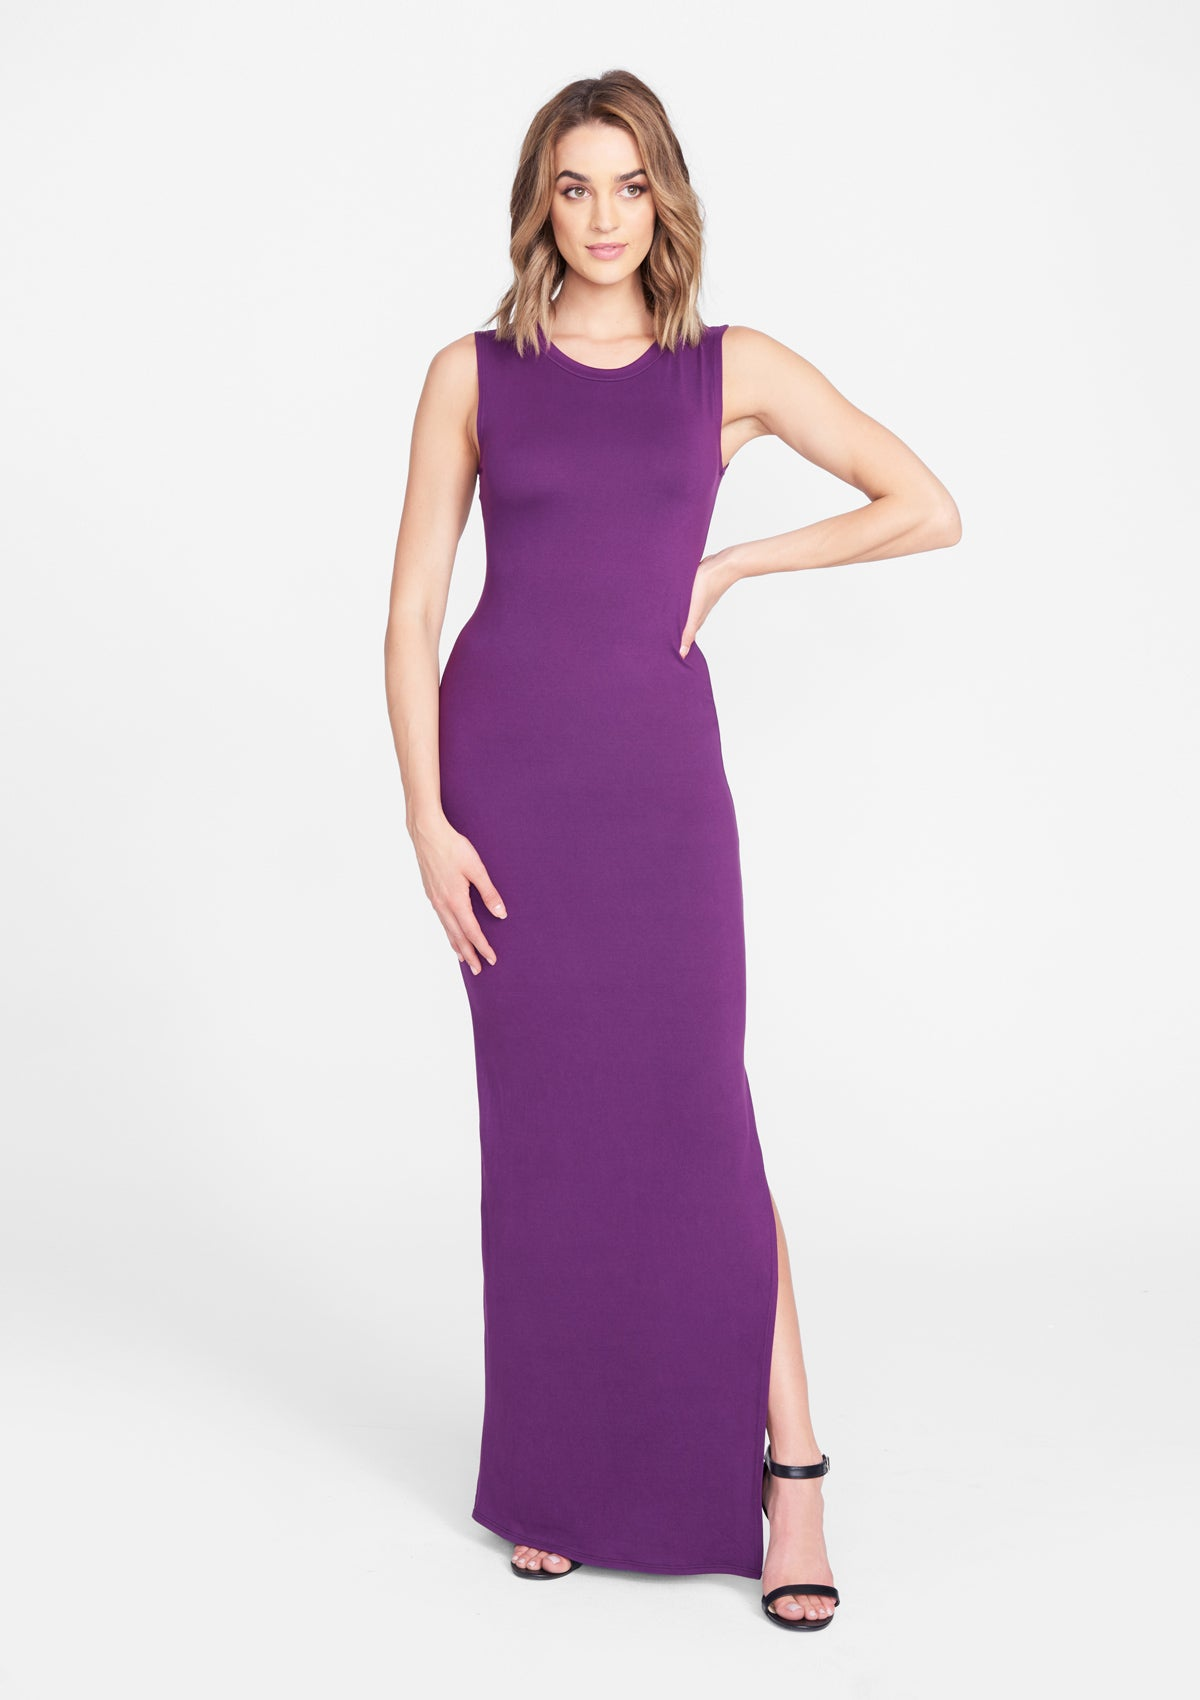 Alloy Apparel Tall Contour Muscle Dress for Women in Eggplant Size L   Polyester